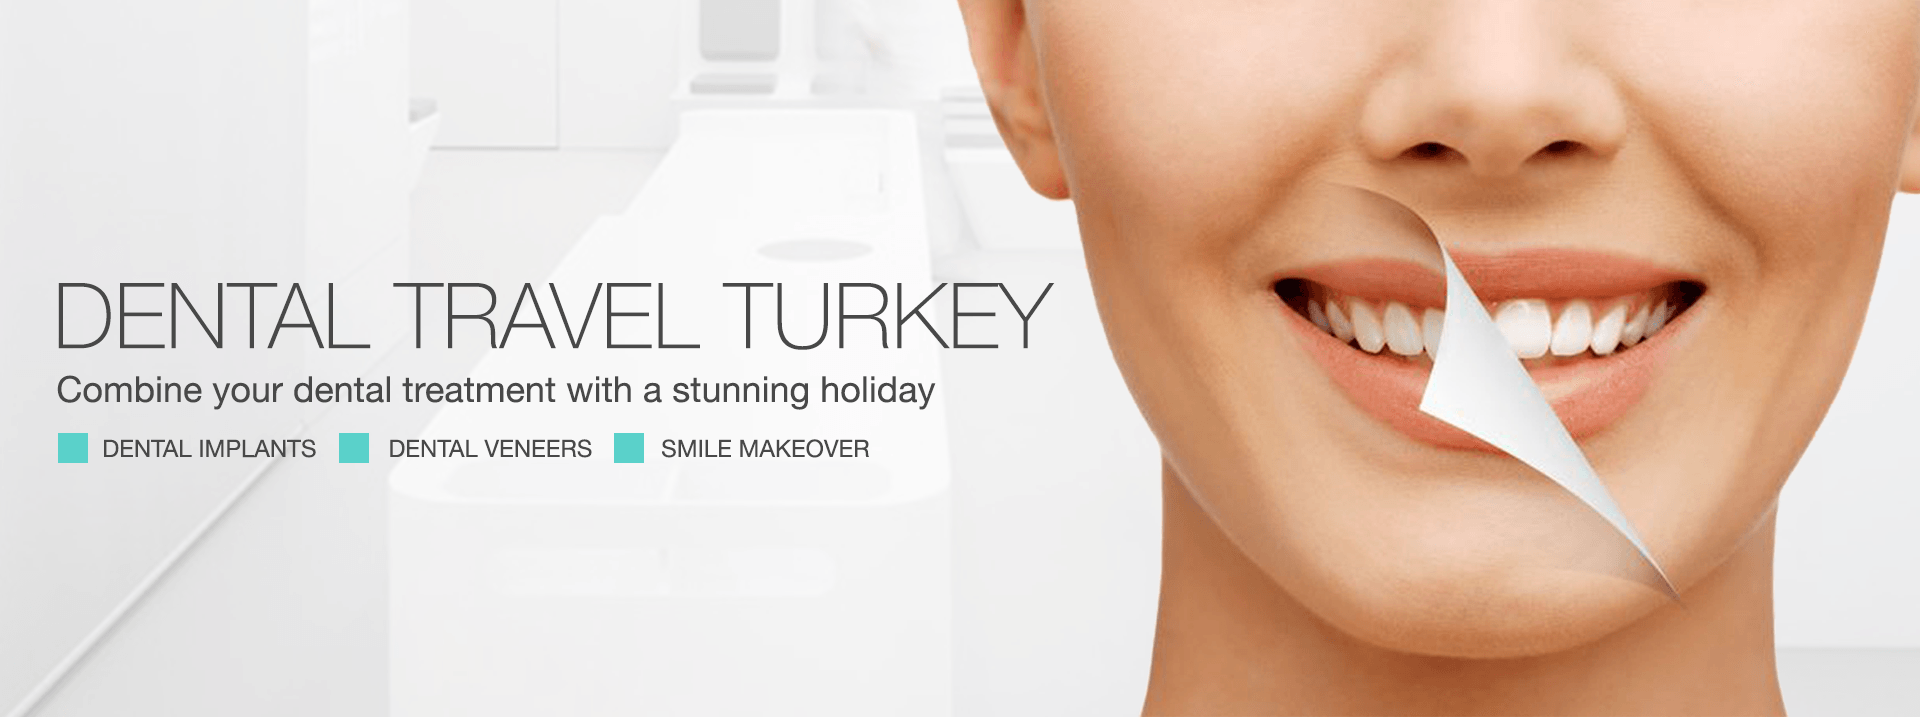 Premium Dental Turkey, Dental Centre Turkey, Dentist in Turkey ...